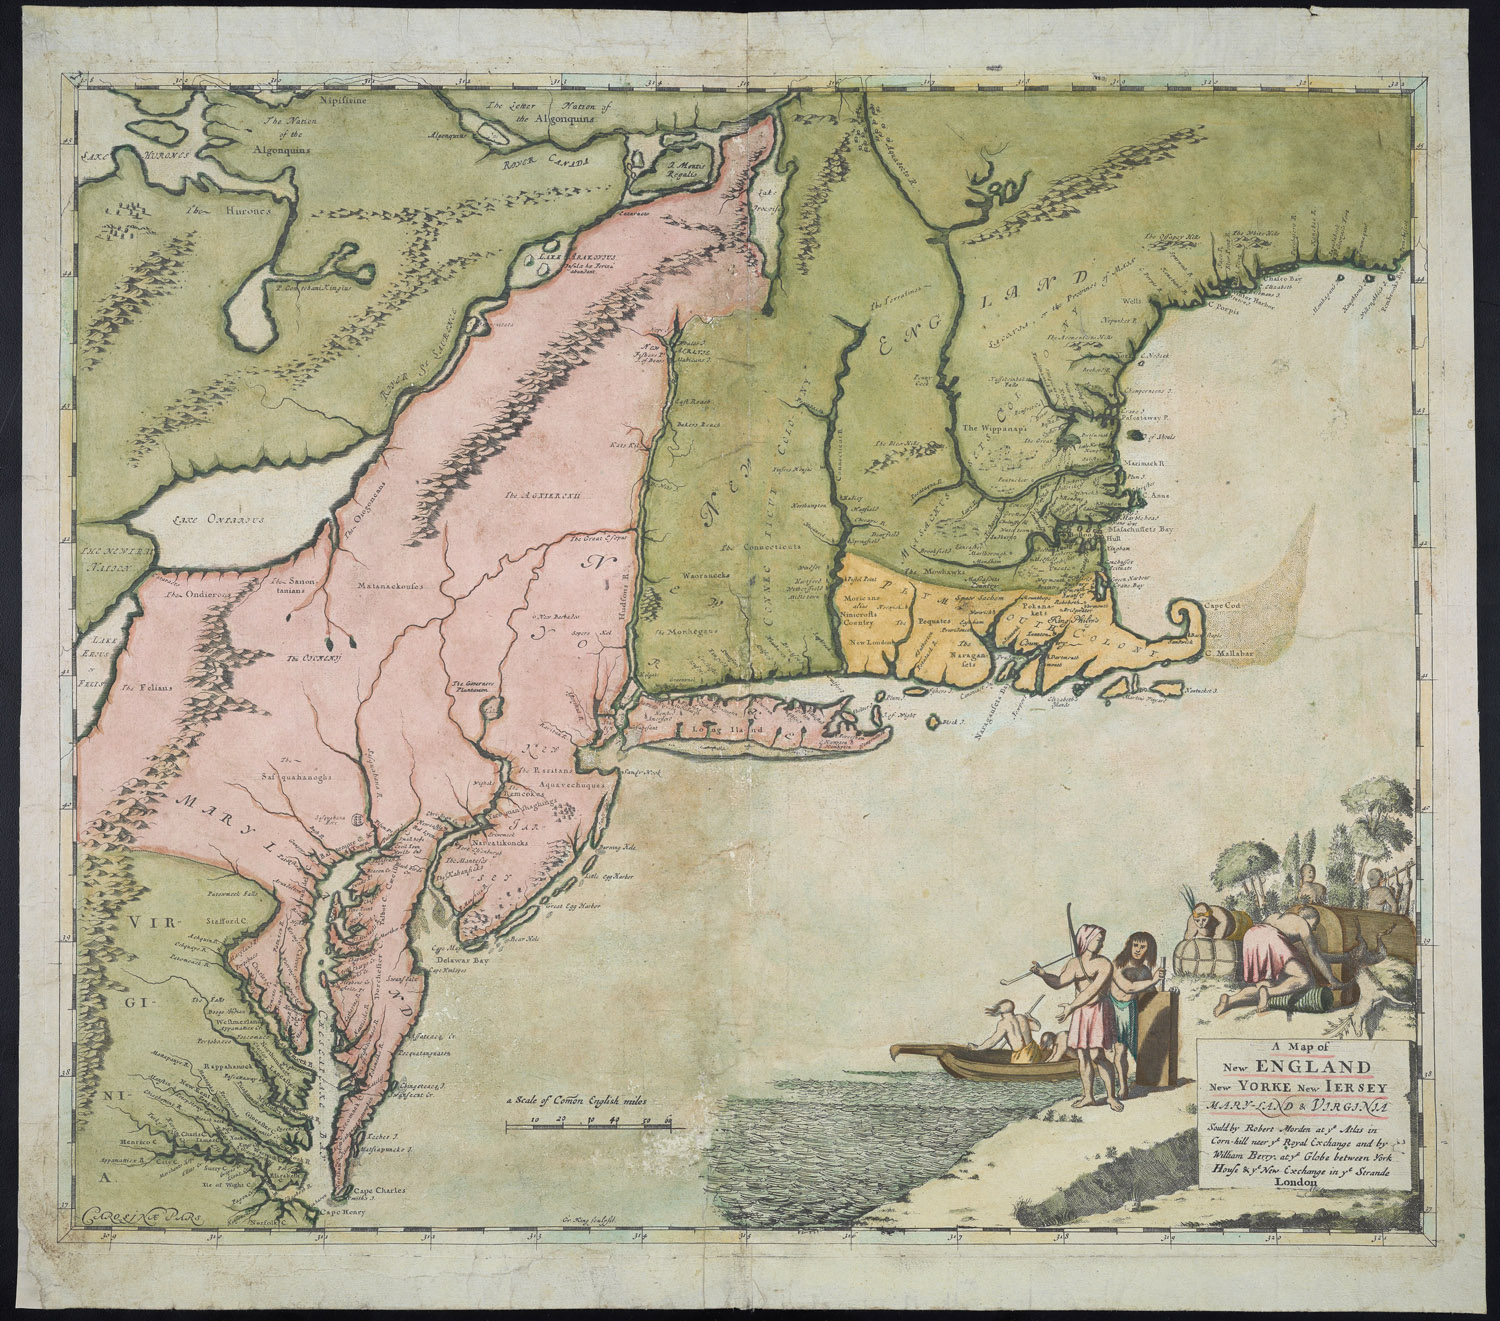 Robert Morden,  A Map of New England New York New Jersey Maryland & Virginia  (London, 1676). Osher Map Library and Smith Center for Cartographic Education, University of Southern Maine (Osher Collection). See http://www.oshermaps.org/map/491.0001